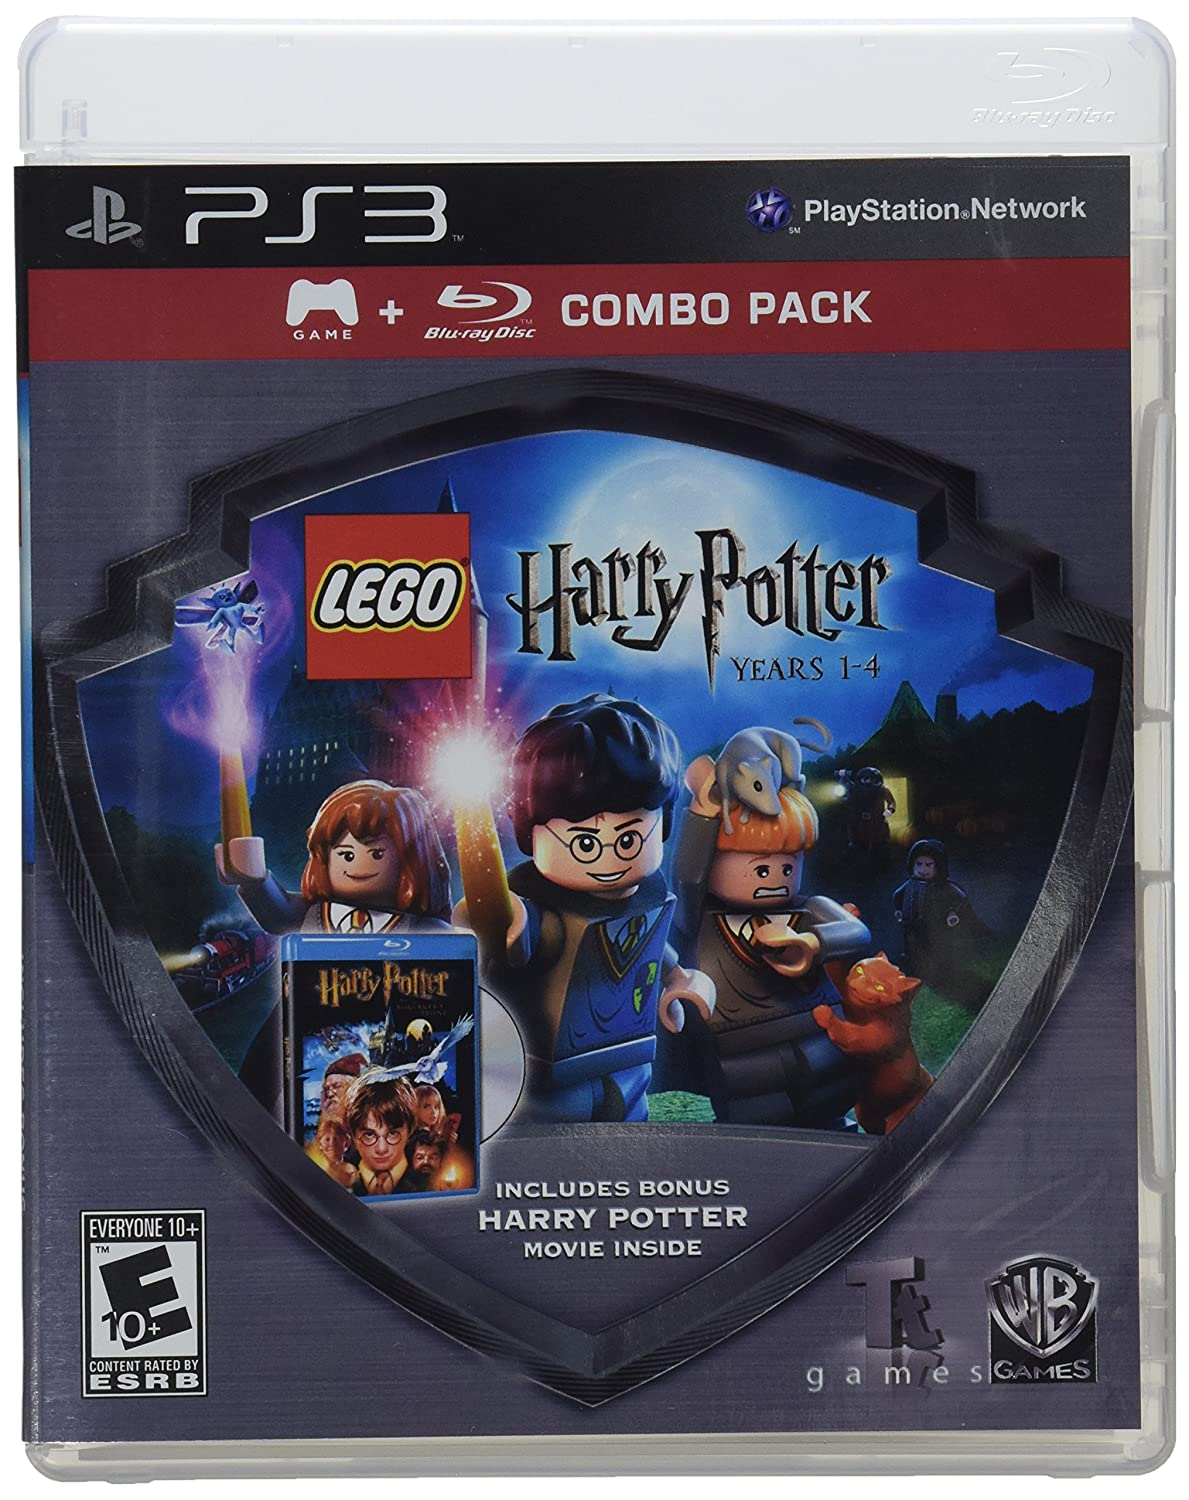 Lego Harry Potter: 1-4 Game/HP Sorcerers Bluray Co USA: Amazon.es: WB Games: Cine y Series TV